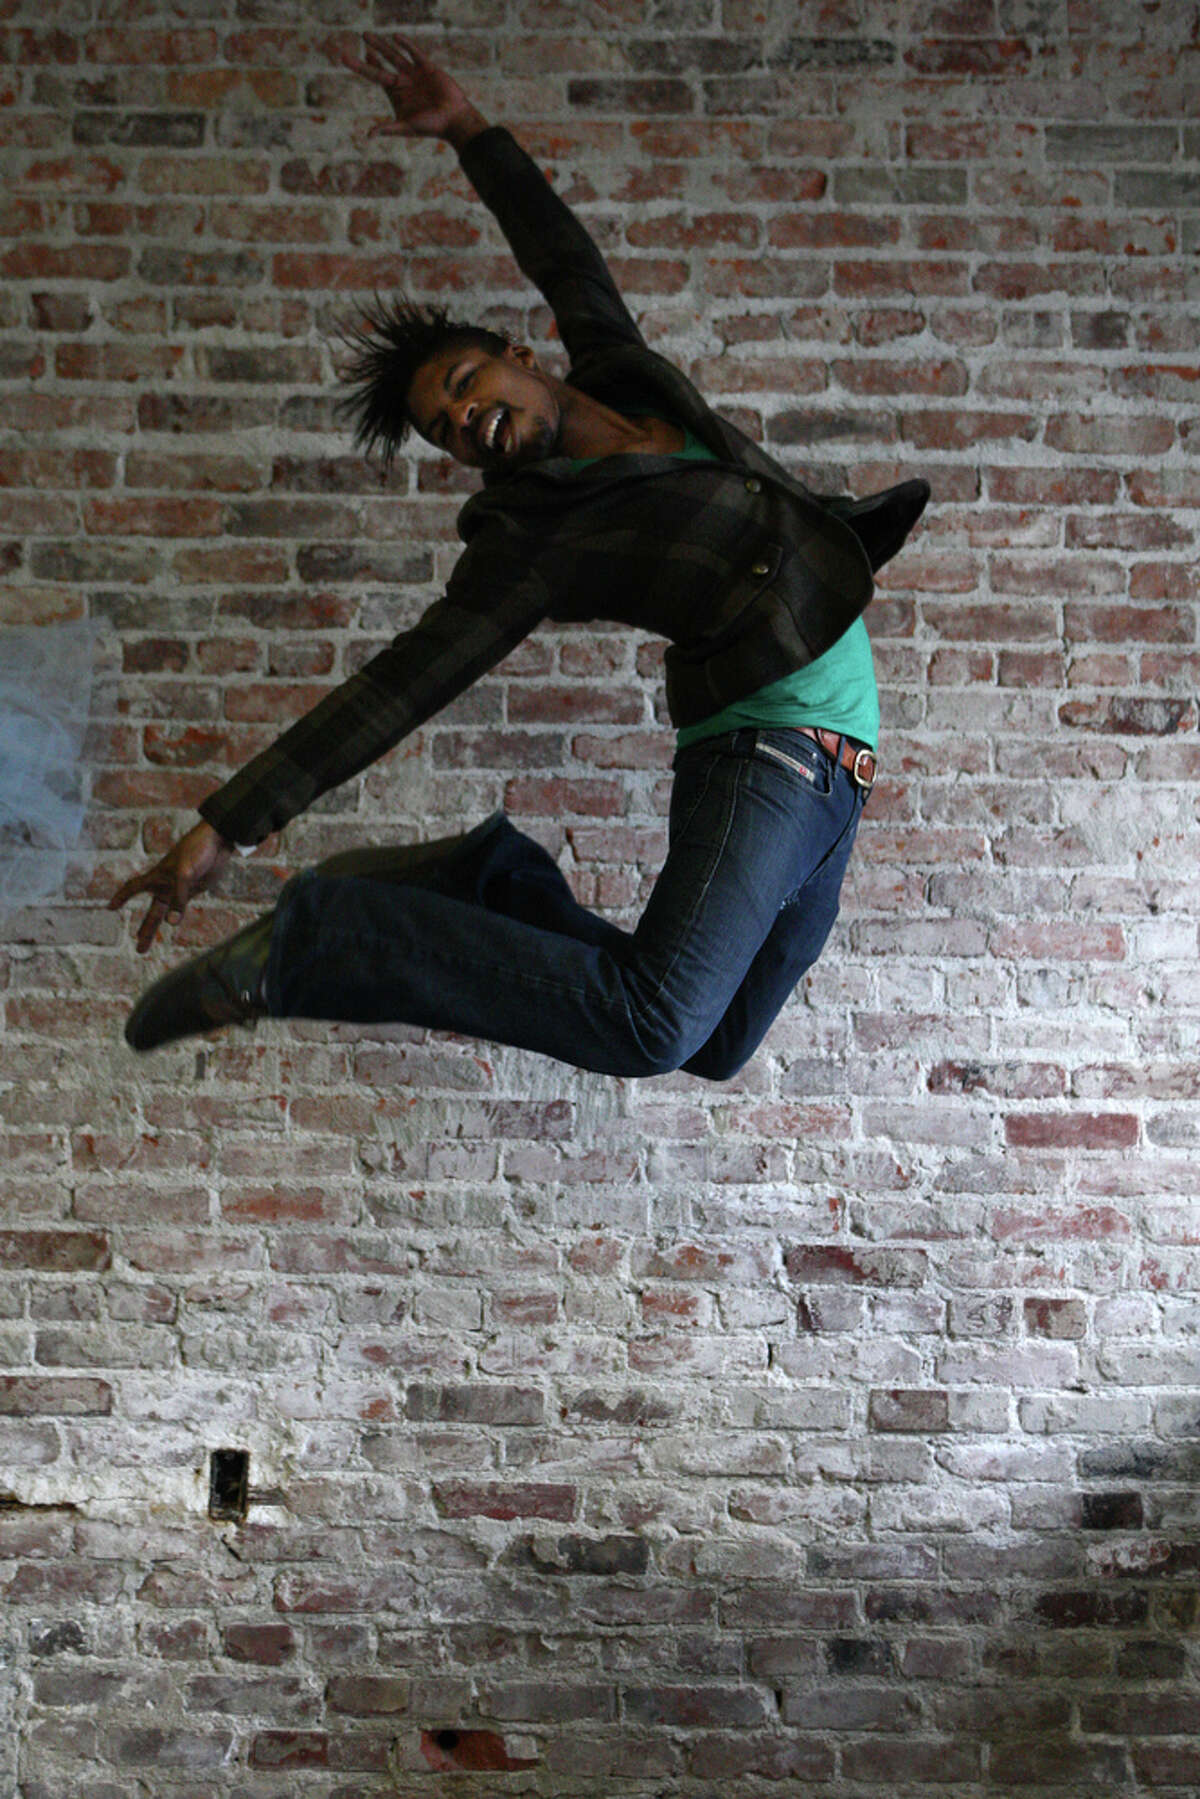 Renado Tozer leaps in honor of Leap Year day on Tuesday, February 28, 2012.